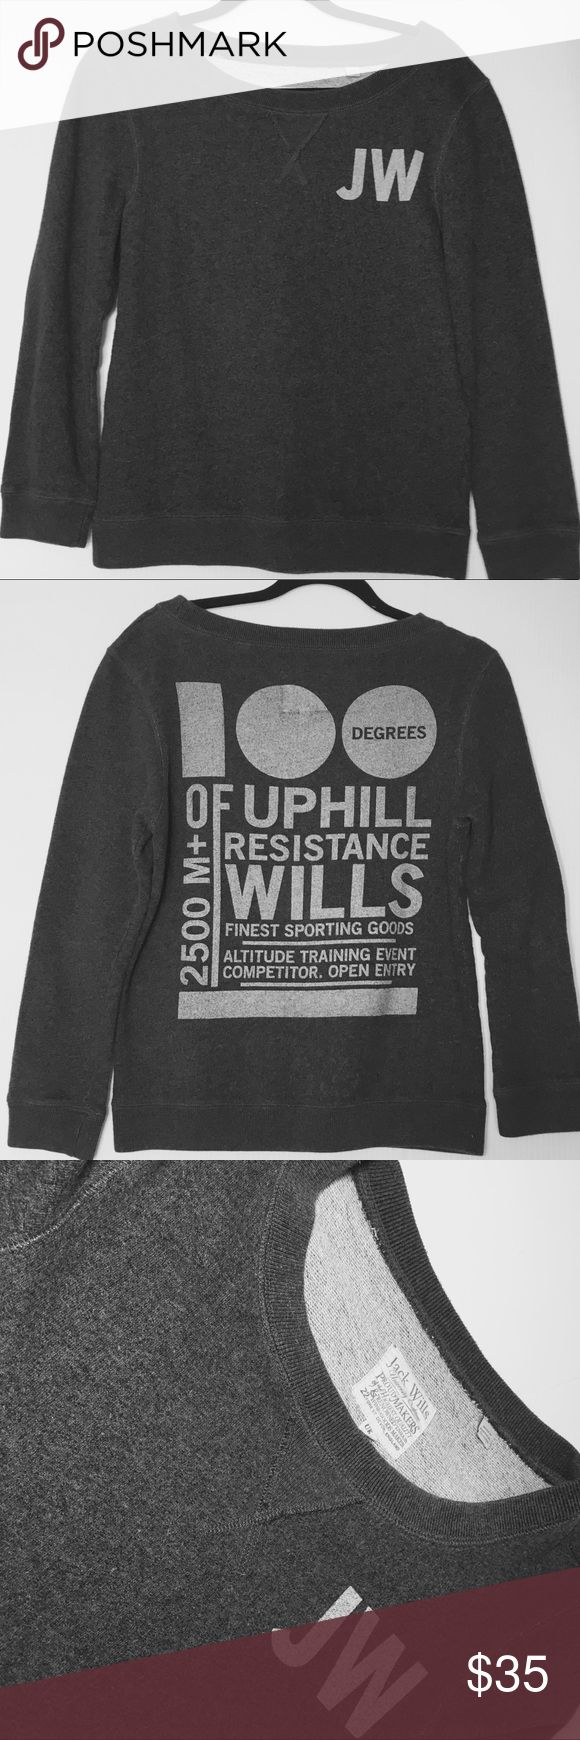 """Jack Wills Sweatshirt Slate grey sweatshirt. Great quality!  Small mark on the front - hardly noticeable (see last pic). Size 4 or XS/S.  Measures 18"""" laying flat pit to pit and 23"""" long. No trades. Jack Wills Tops Sweatshirts & Hoodies"""